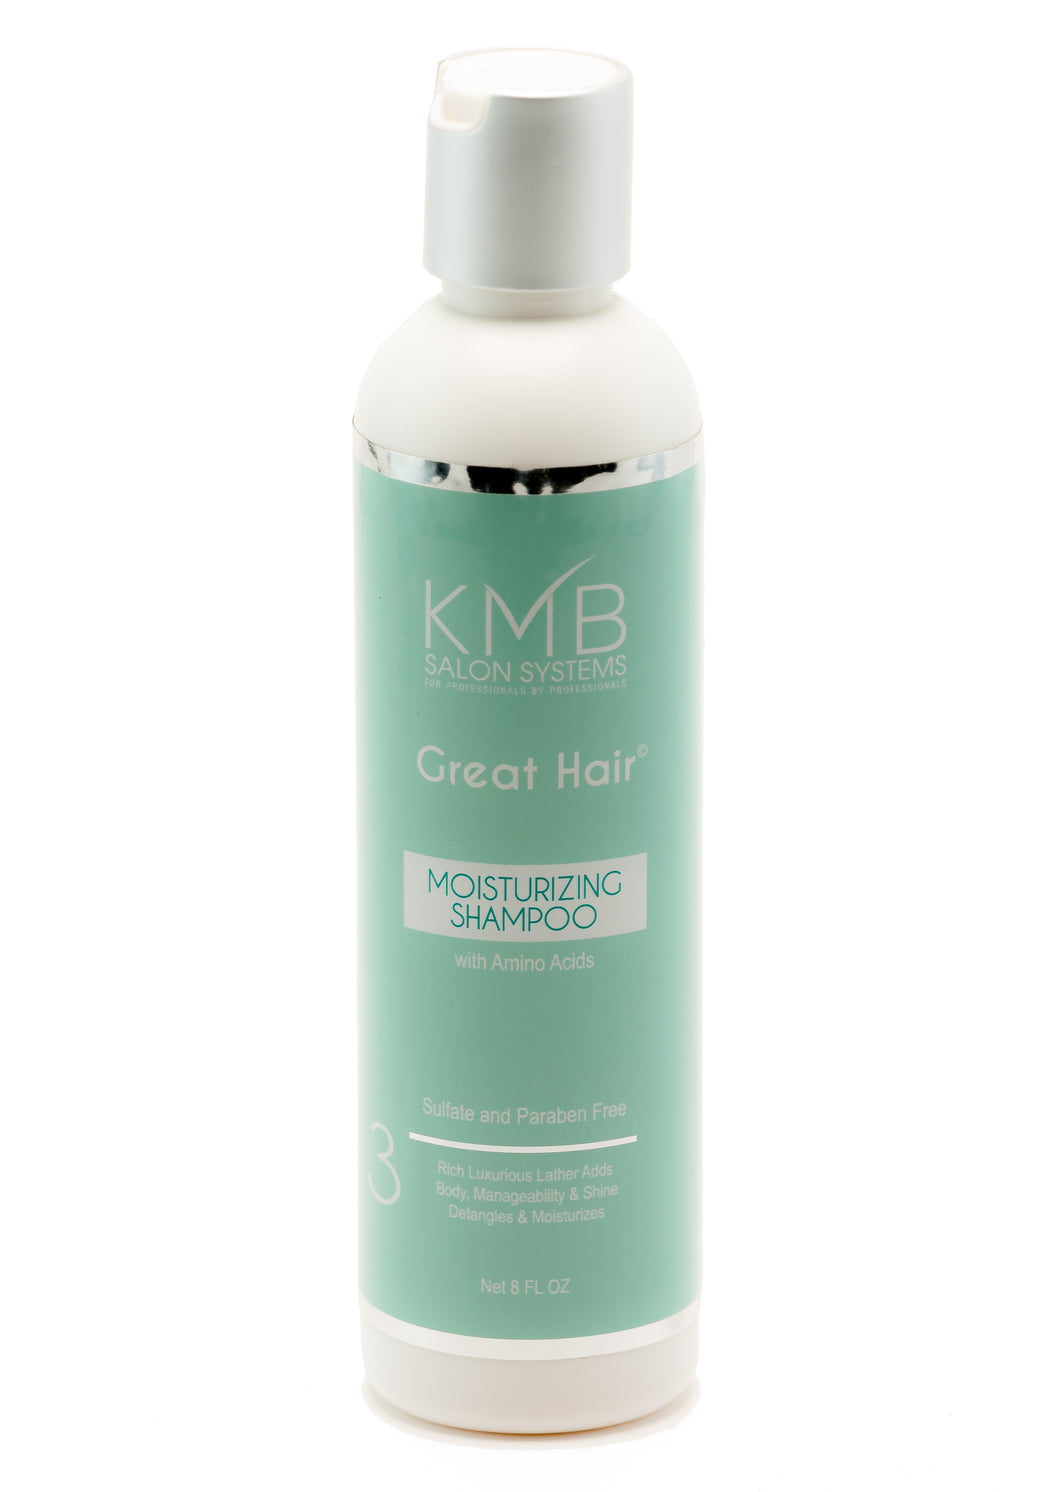 Great Hair Moisturizing Shampoo is paraben free and replenishes moisture to the hair and provides softening agents for manageability.